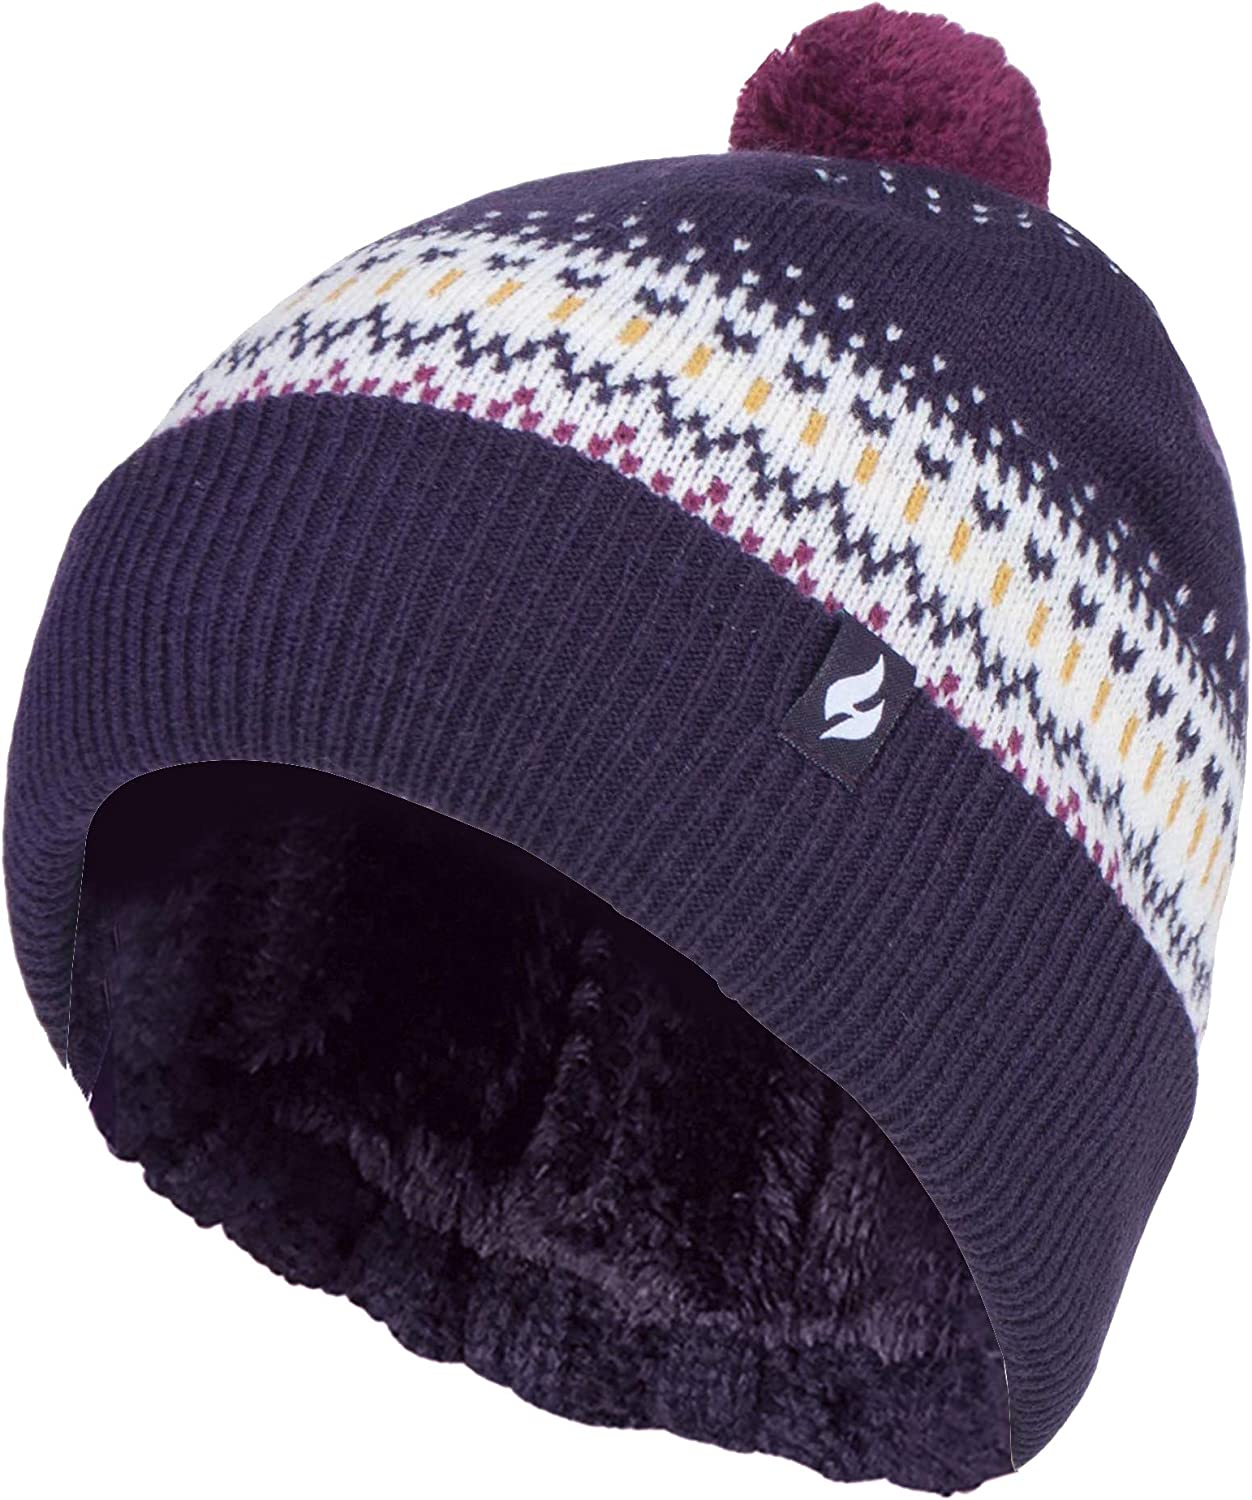 HEAT HOLDERS - Womens Retro Knit Thermal Beanie Bobble Hat with Small Pom Pom